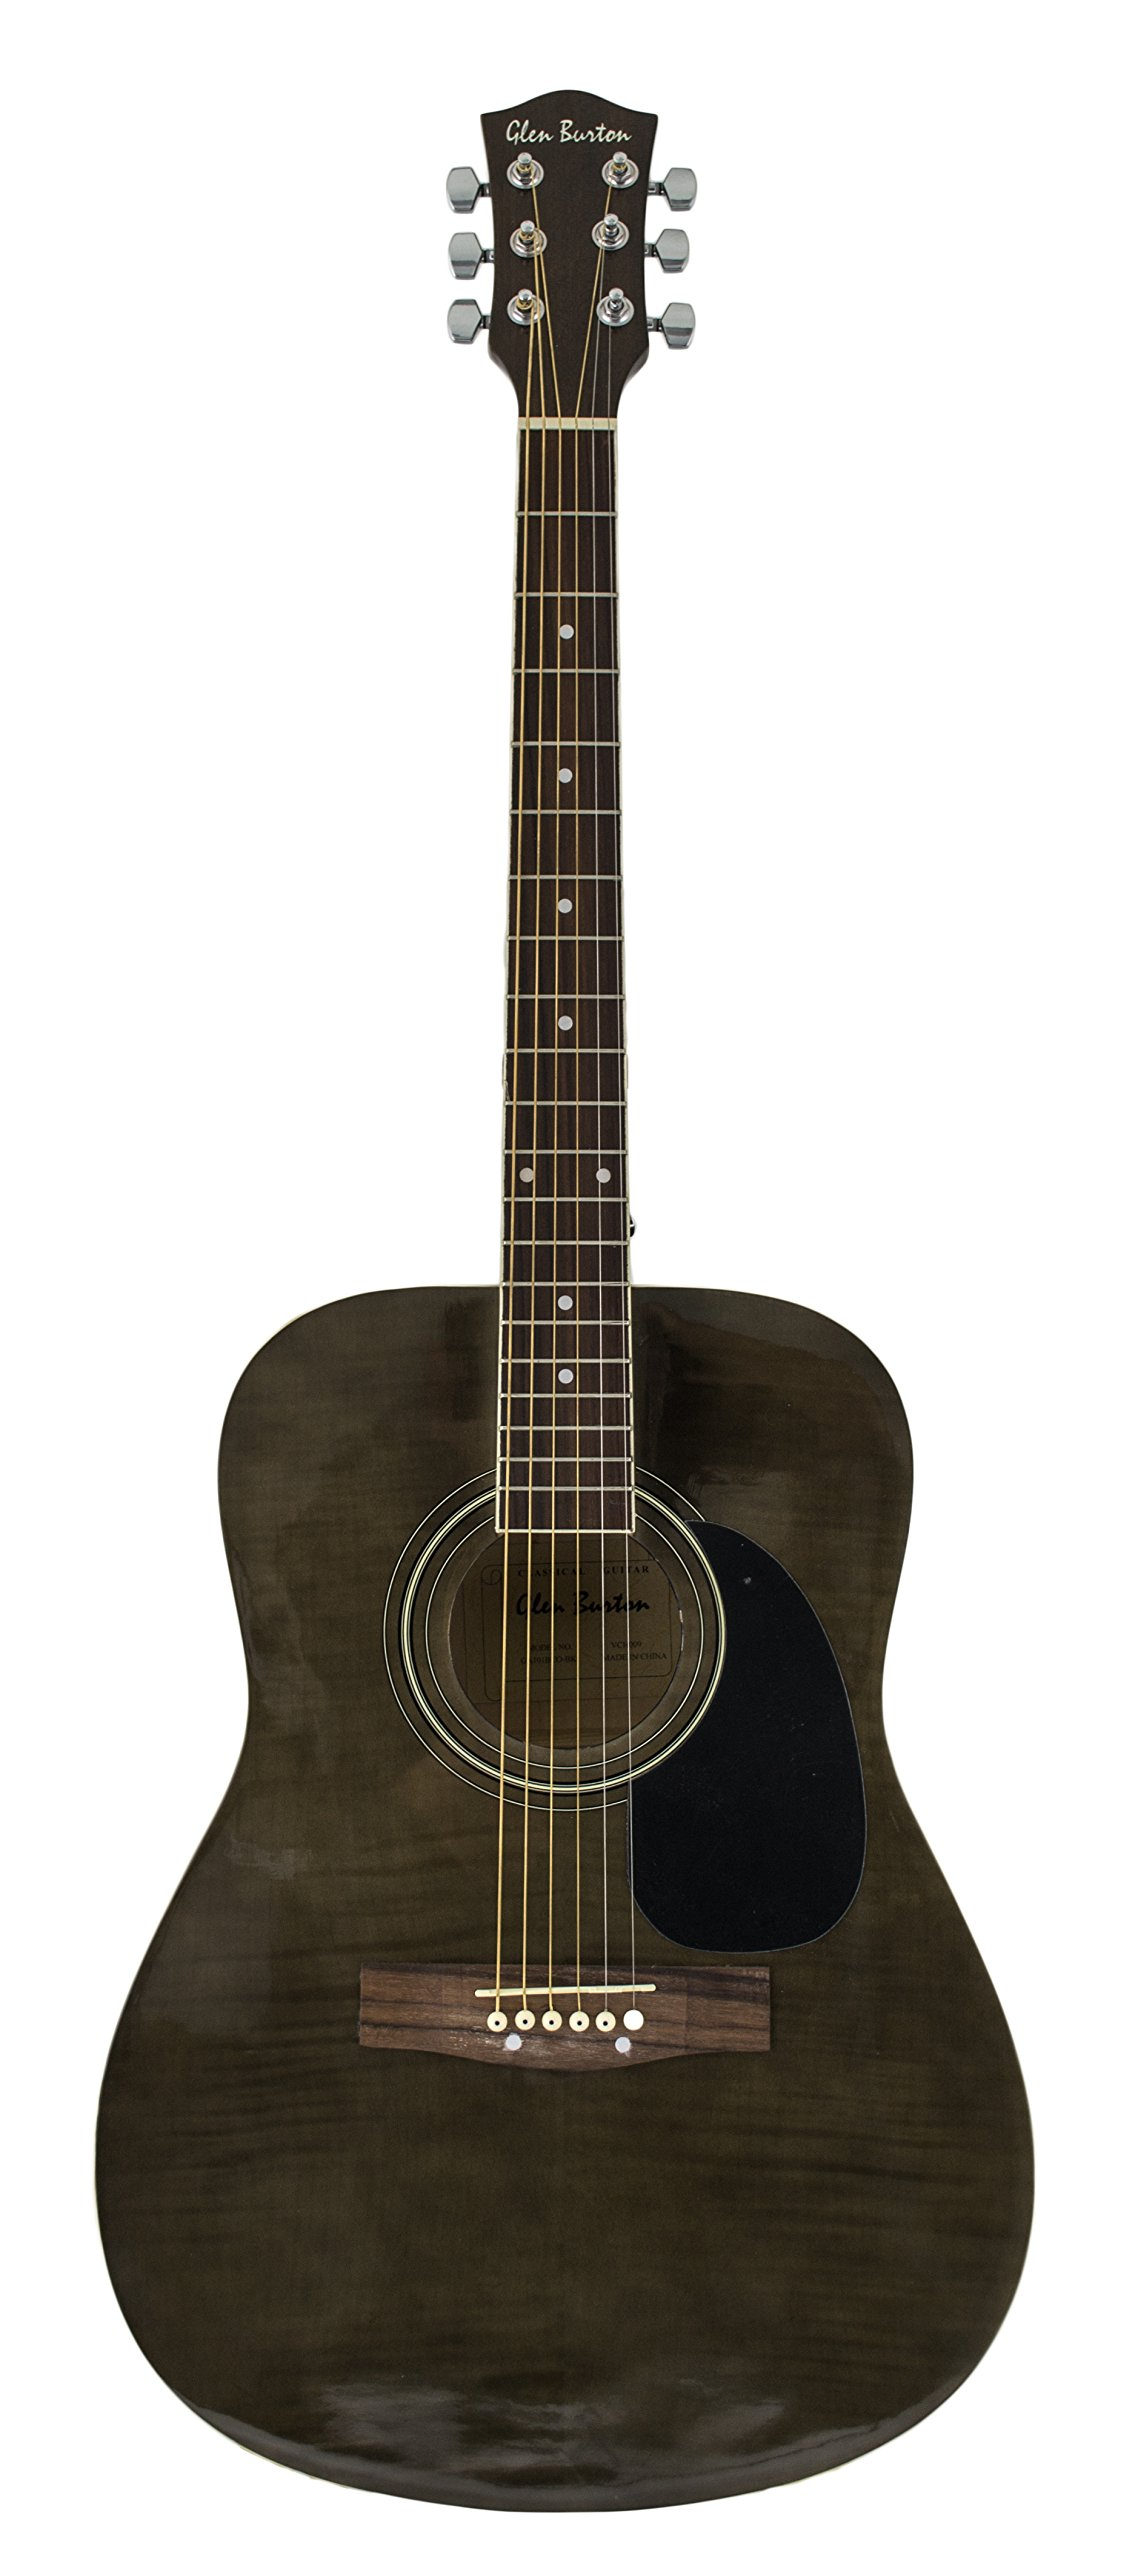 Glen Burton GA101BCO-BK Dreadnaught Acoustic Guitar with Accessories, Black